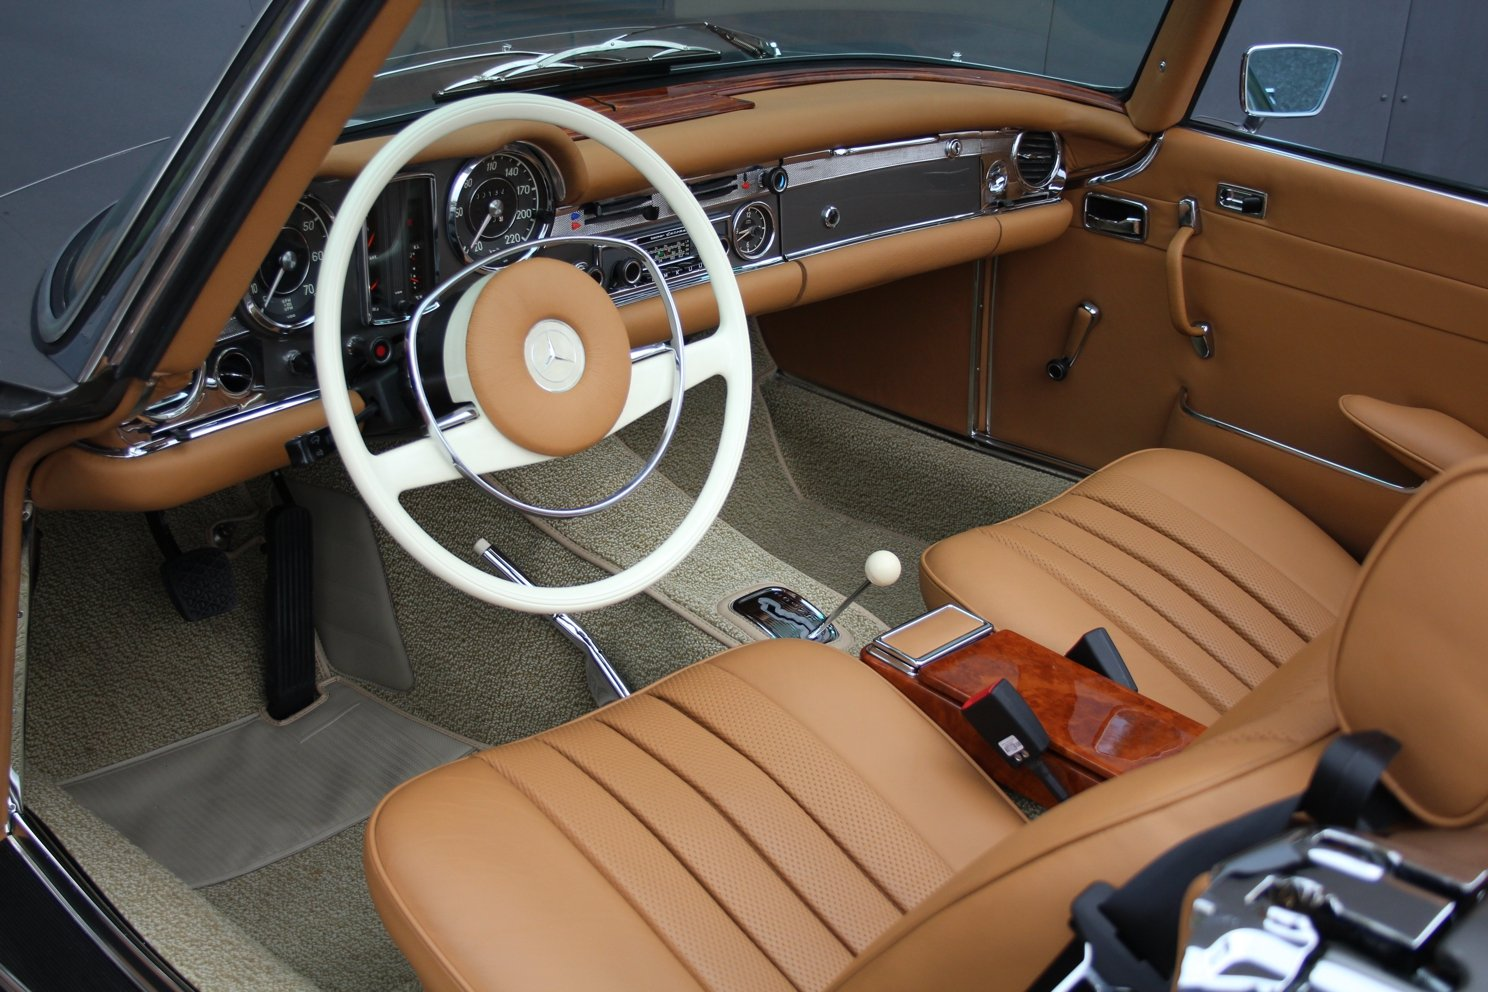 1971 Mercedes-Benz 280 SL Pagoda LHD For Sale (picture 3 of 6)